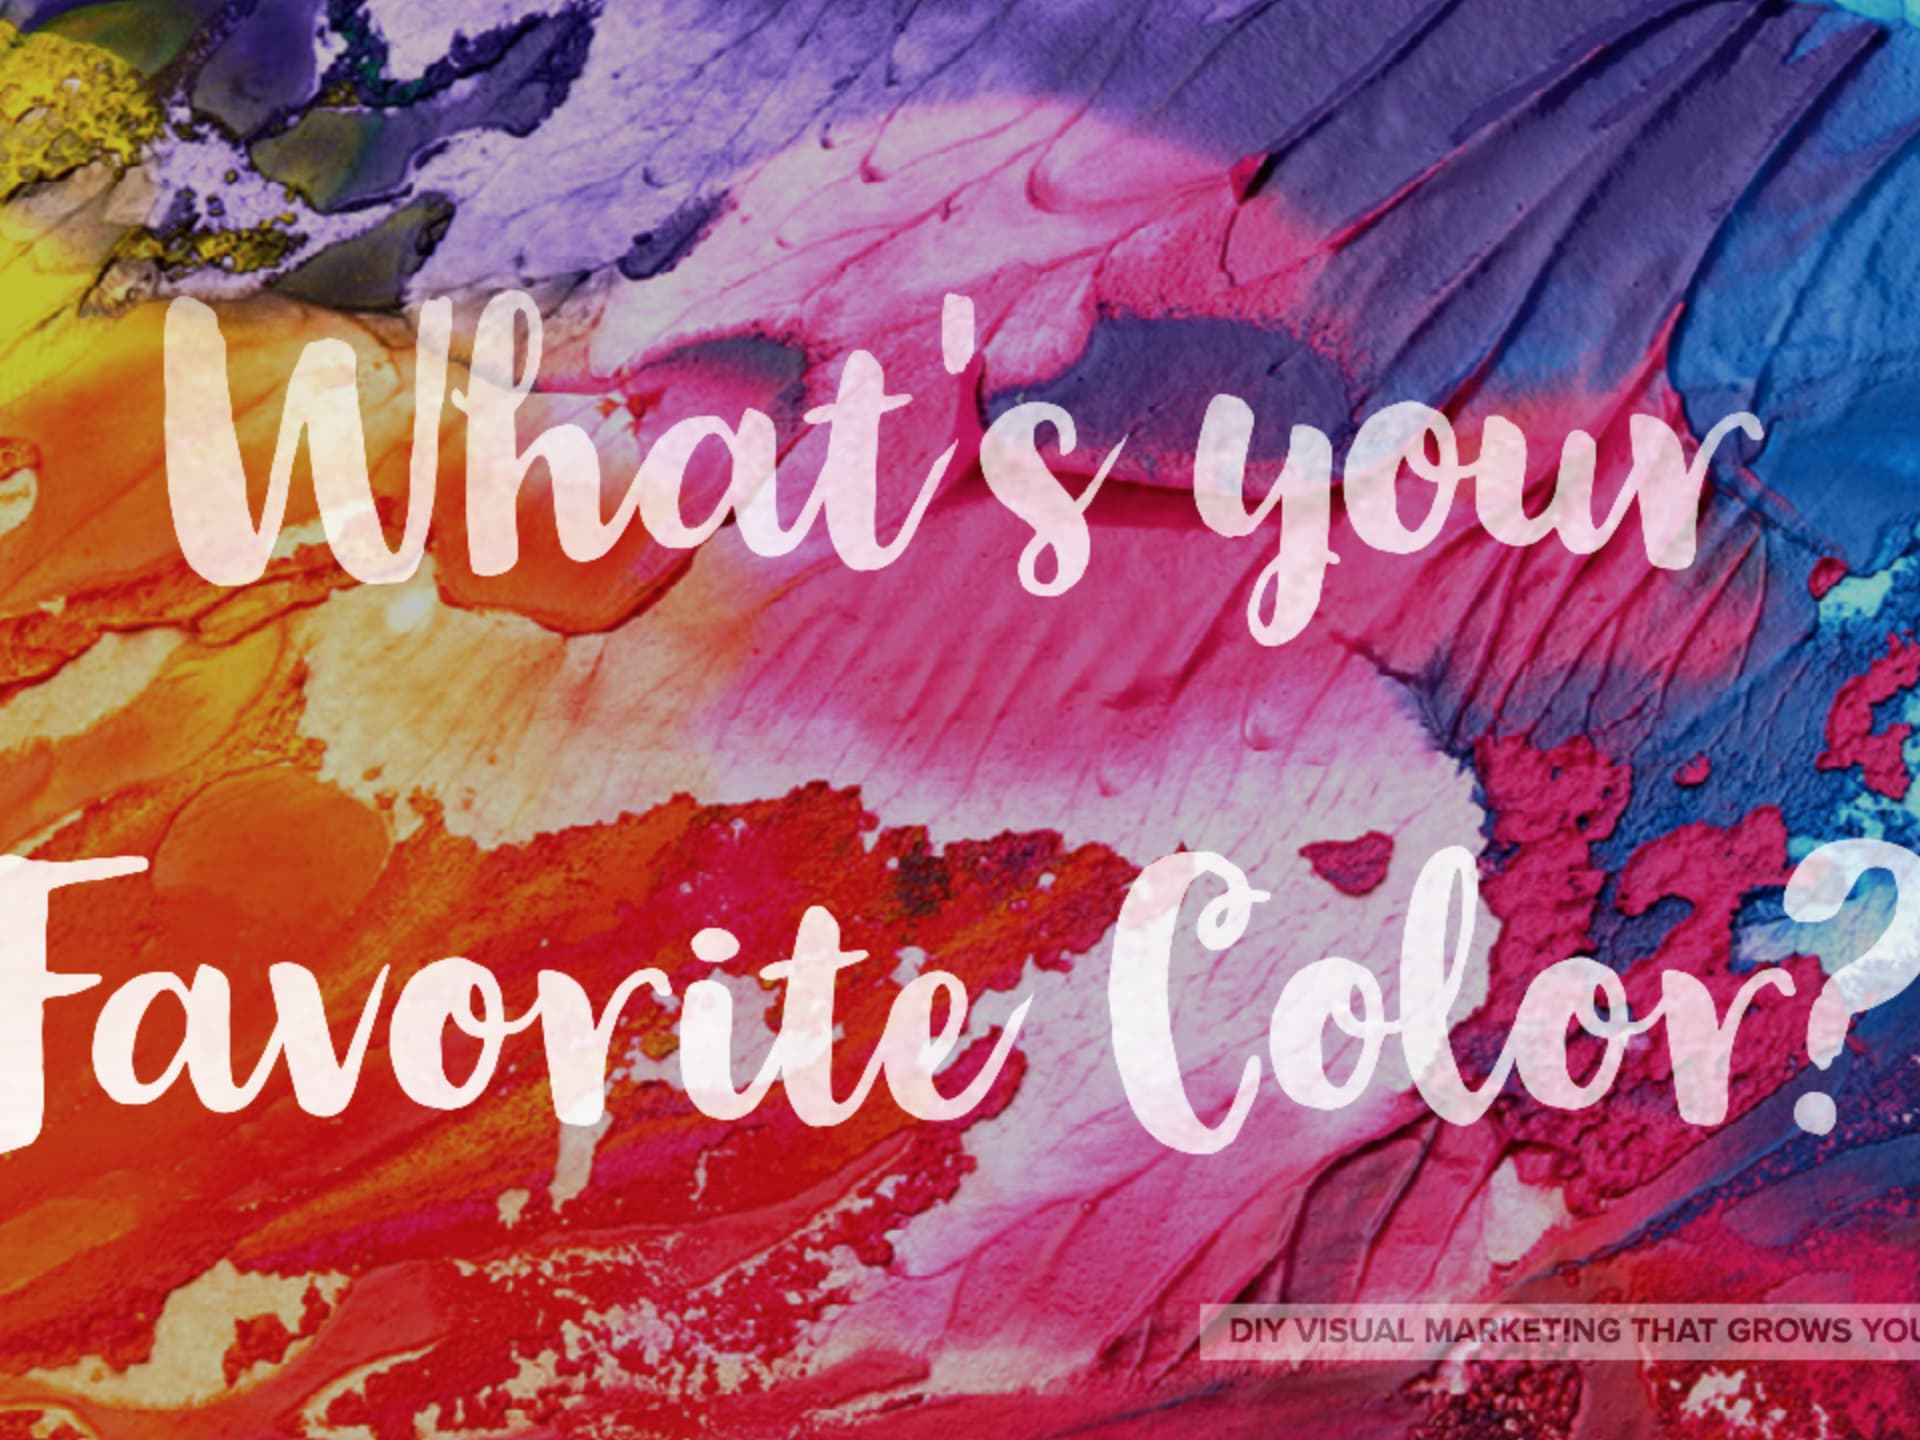 What does your favorite color say about you sexually